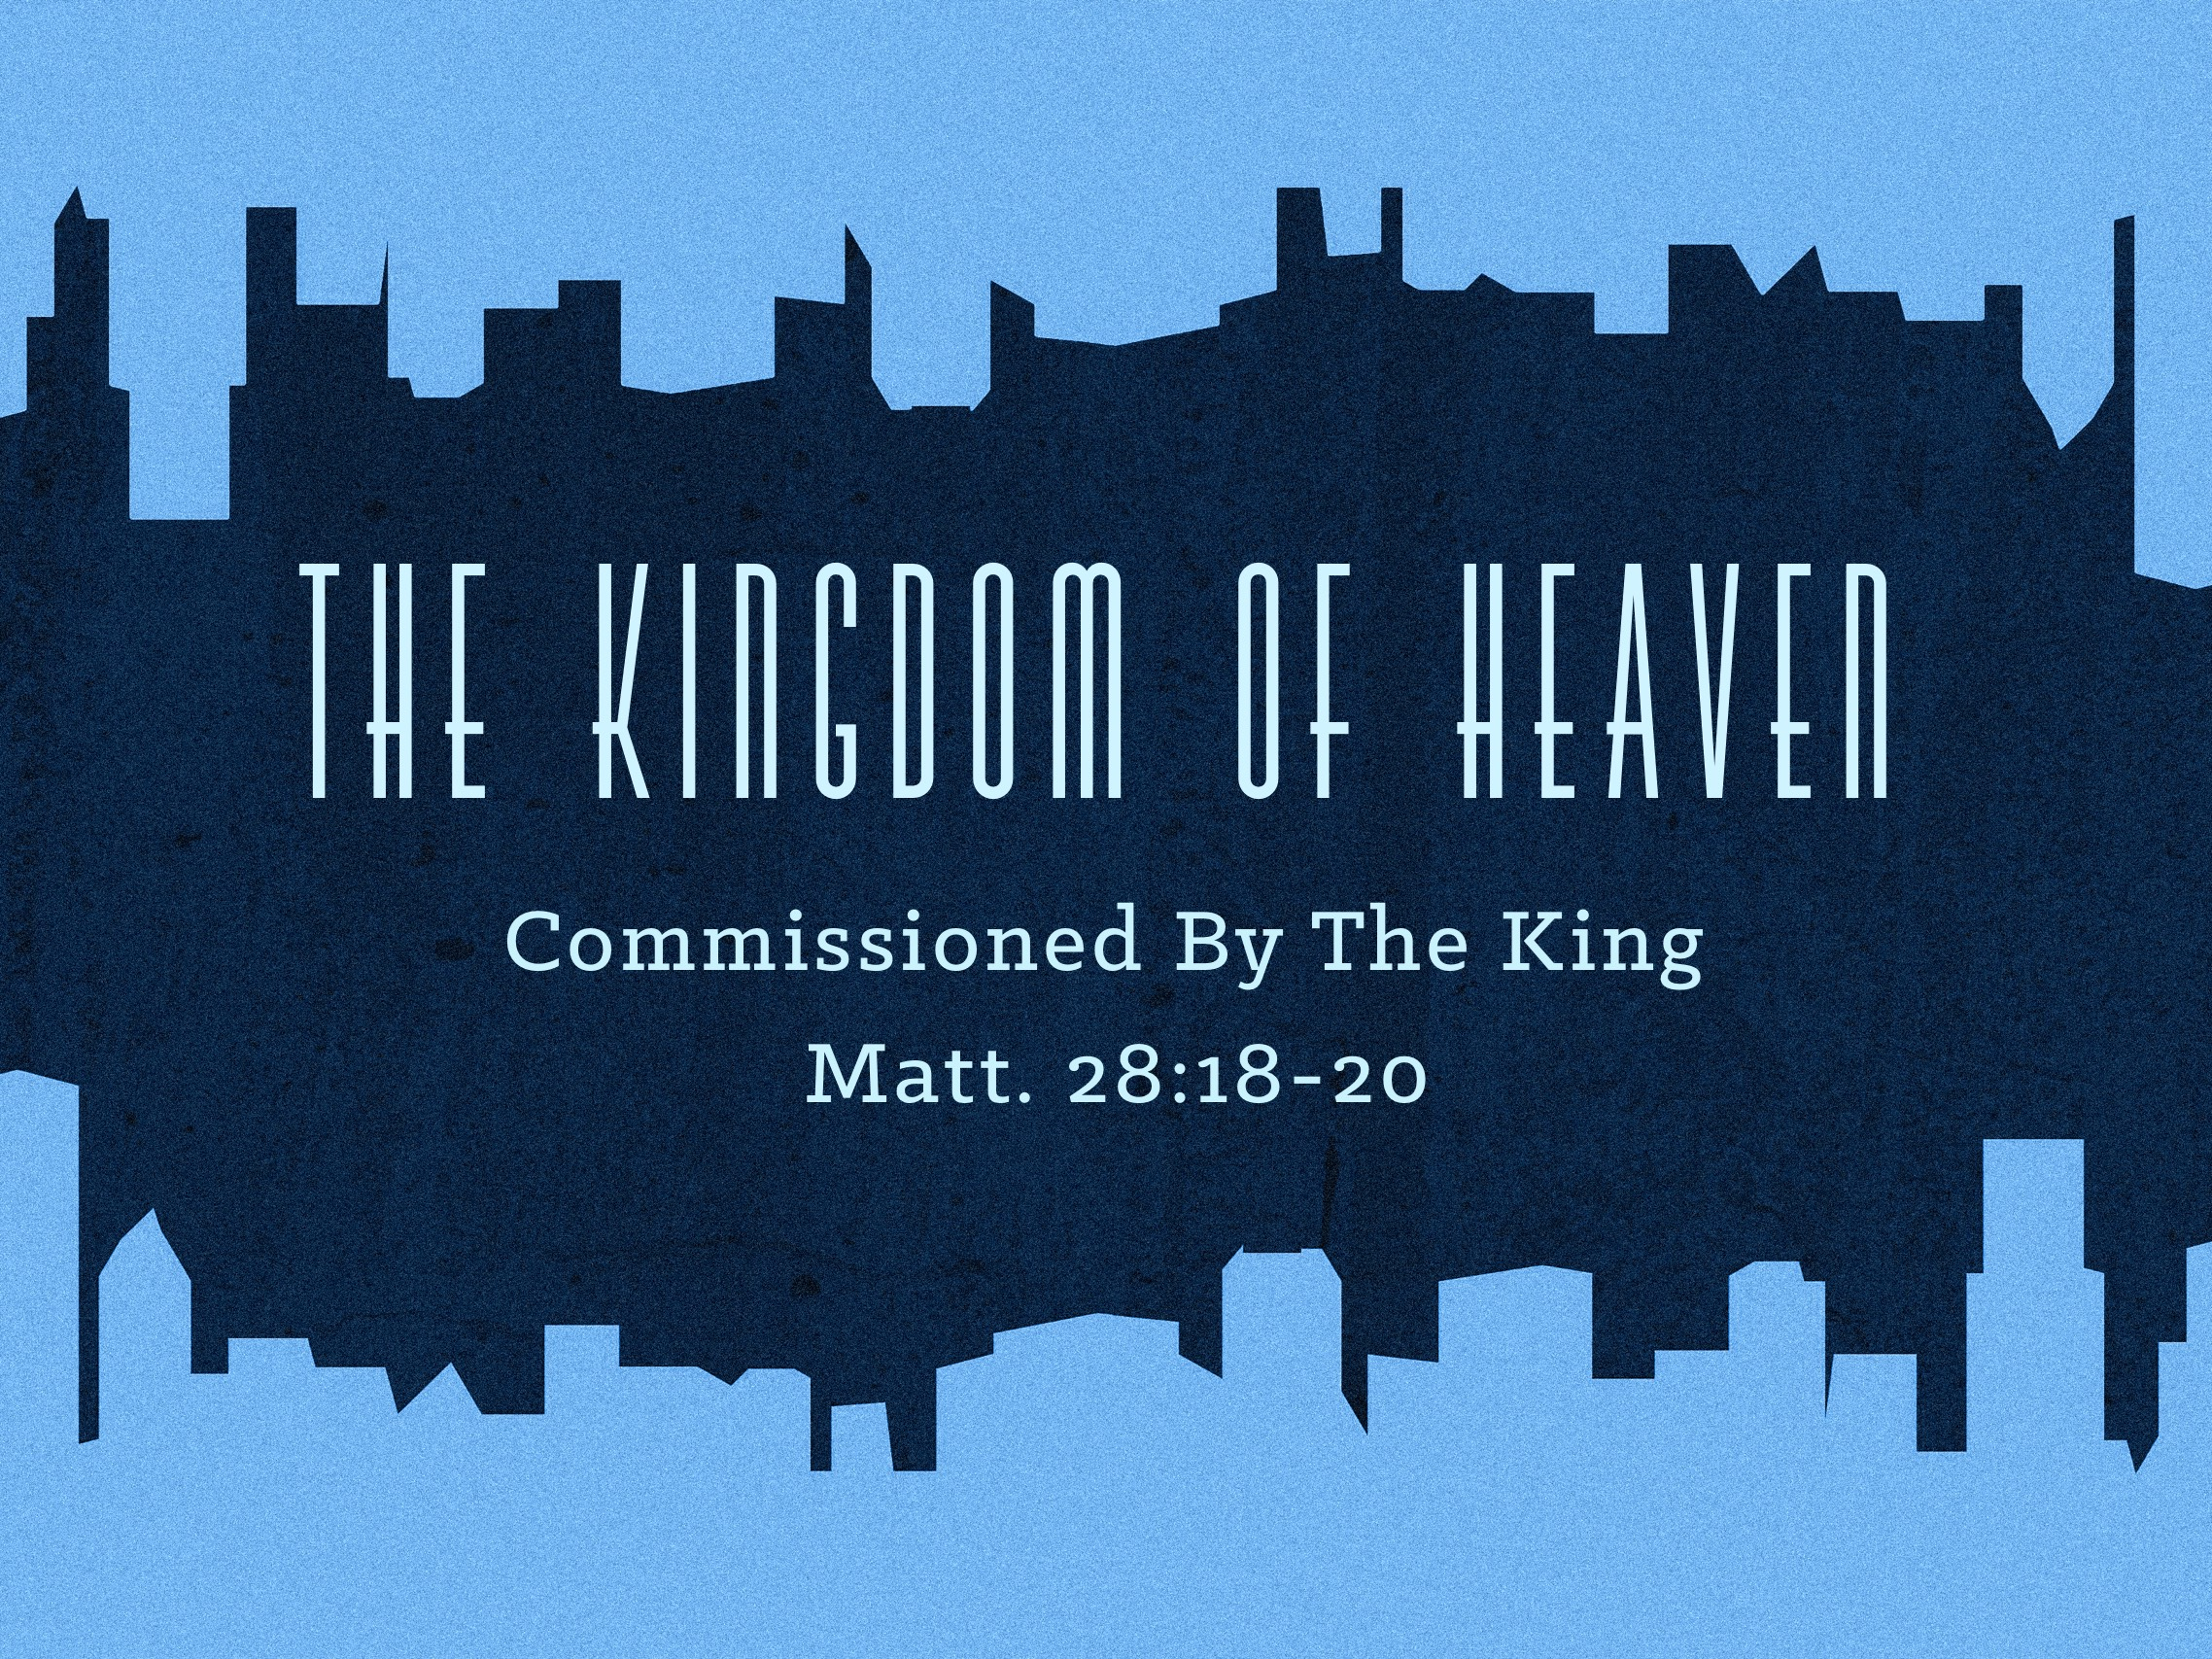 2018.05.06 The Kingdom of Heaven Sermon Slide.jpg